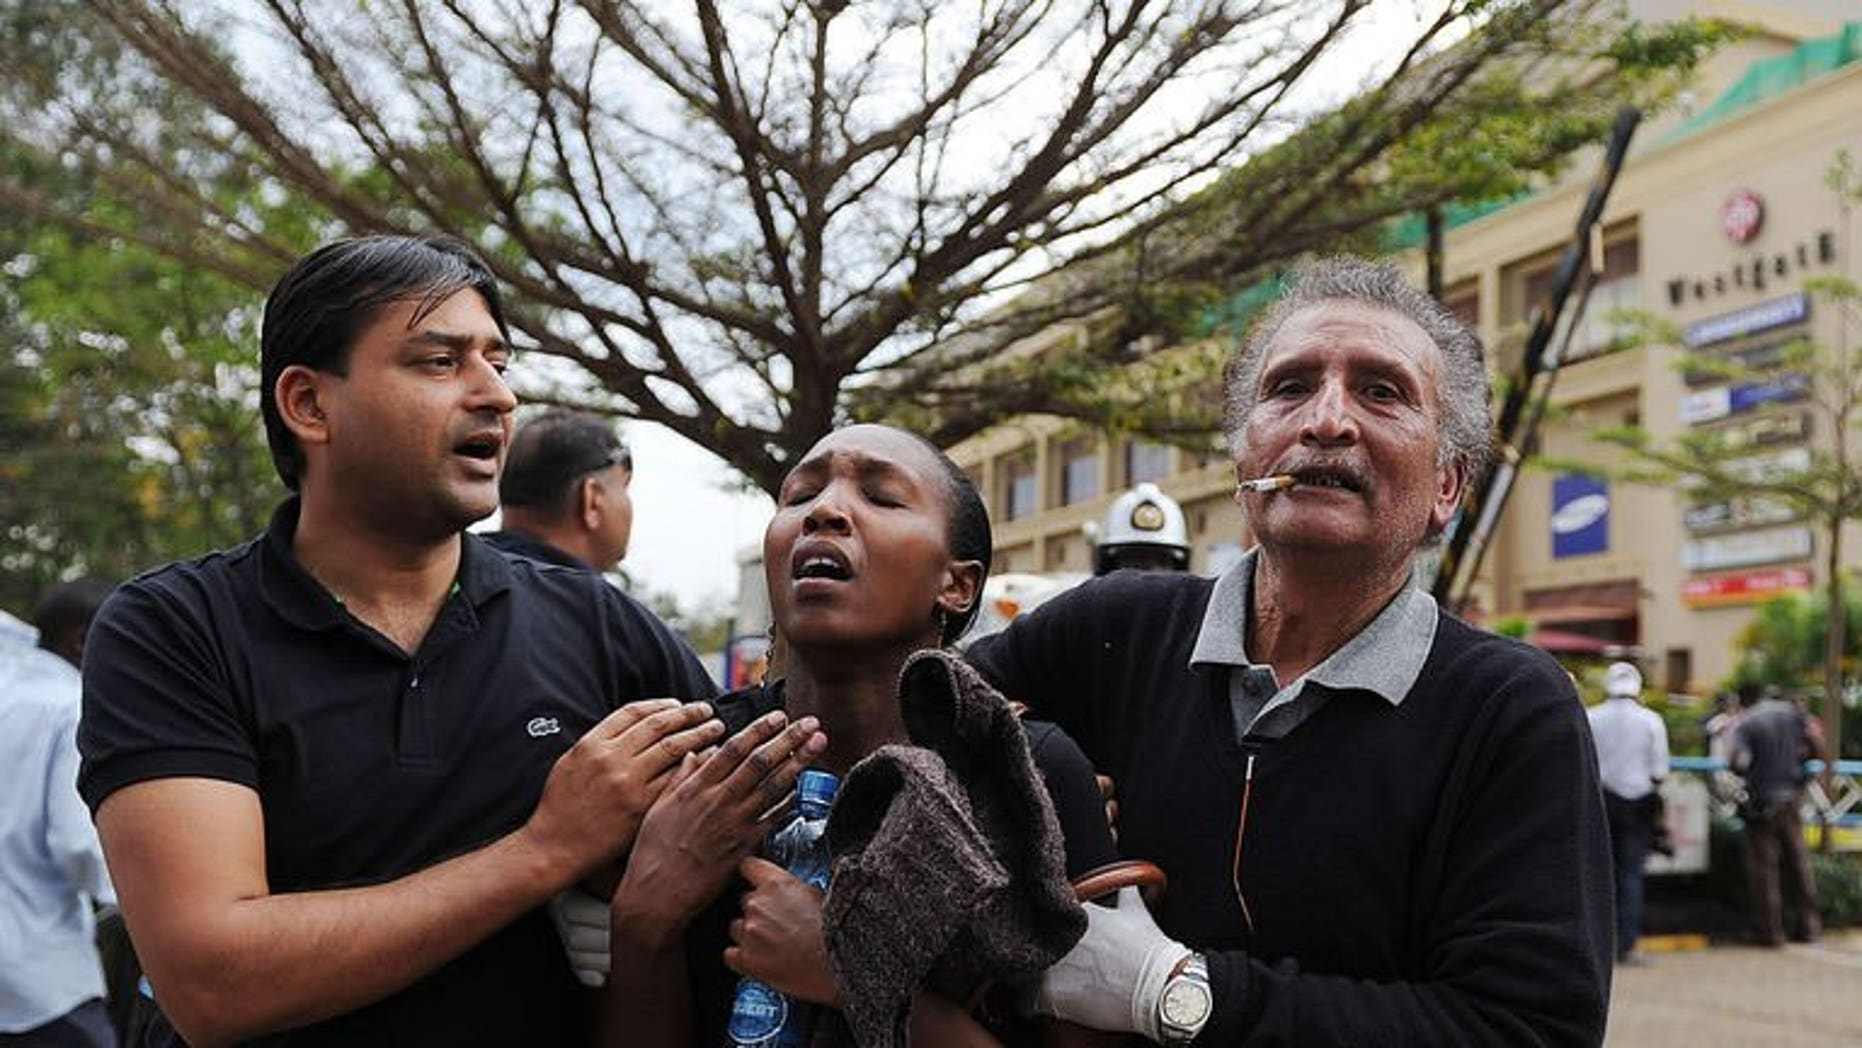 A woman (C) who had been held hostage reacts in shock on September 21, 2013 after she was freed following a security operation at an upmarket shopping mall in Nairobi where suspected terrorrists engaged Kenyan security forces in a drawn out gun fight.